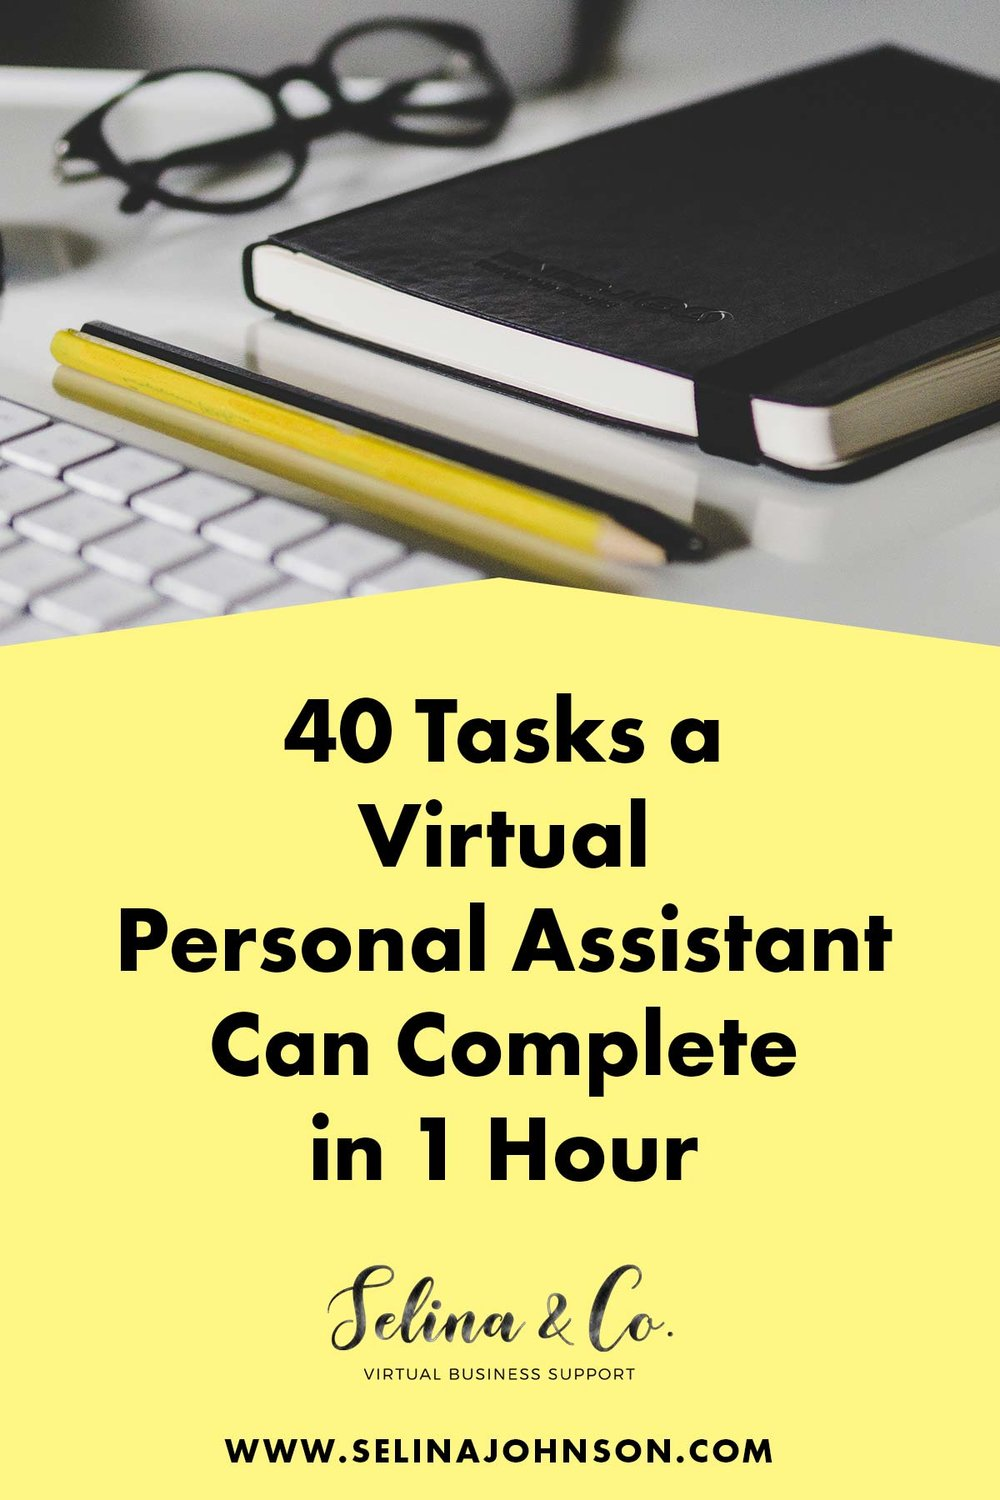 40-tasks-virtual-assistant.jpg